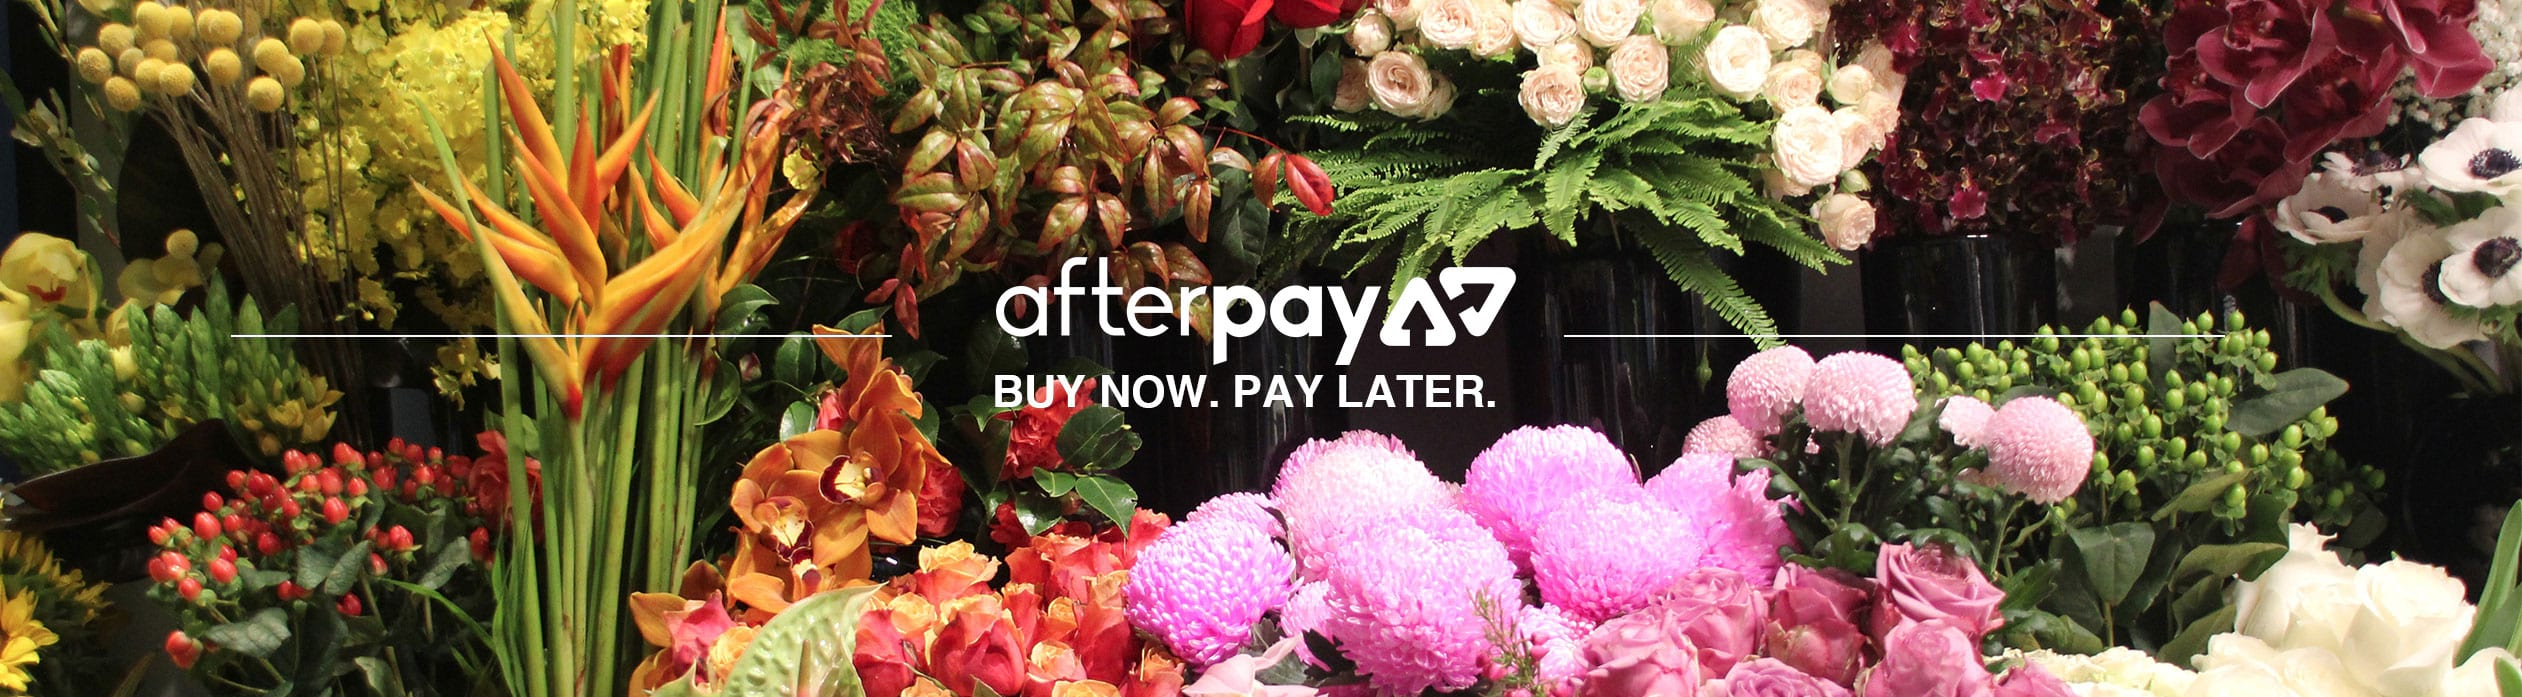 Flowers For Everyone now accepts payments by After Pay.